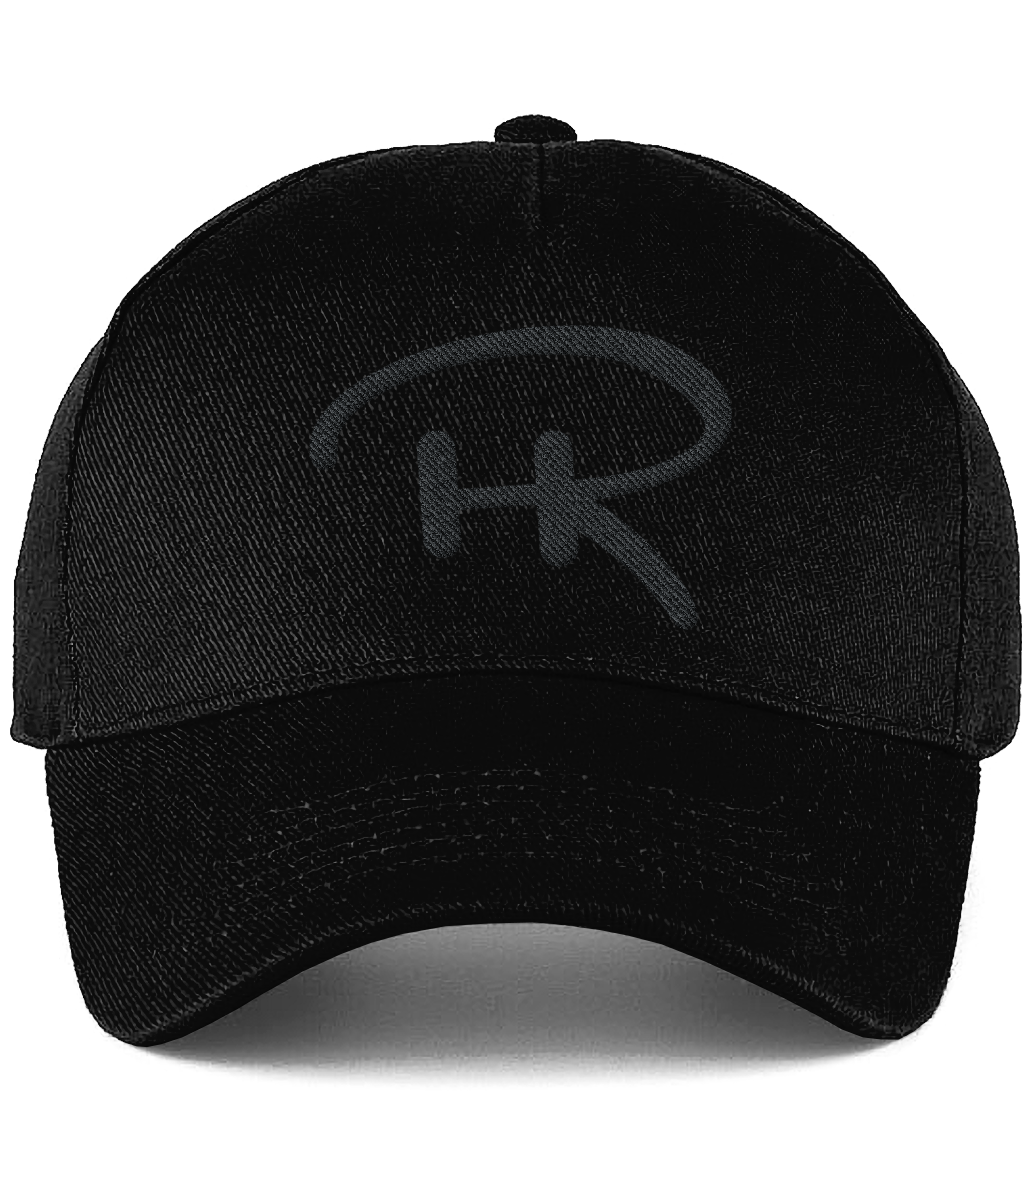 Rodd Hogg Ultimate Cotton Cap (Black On Black)